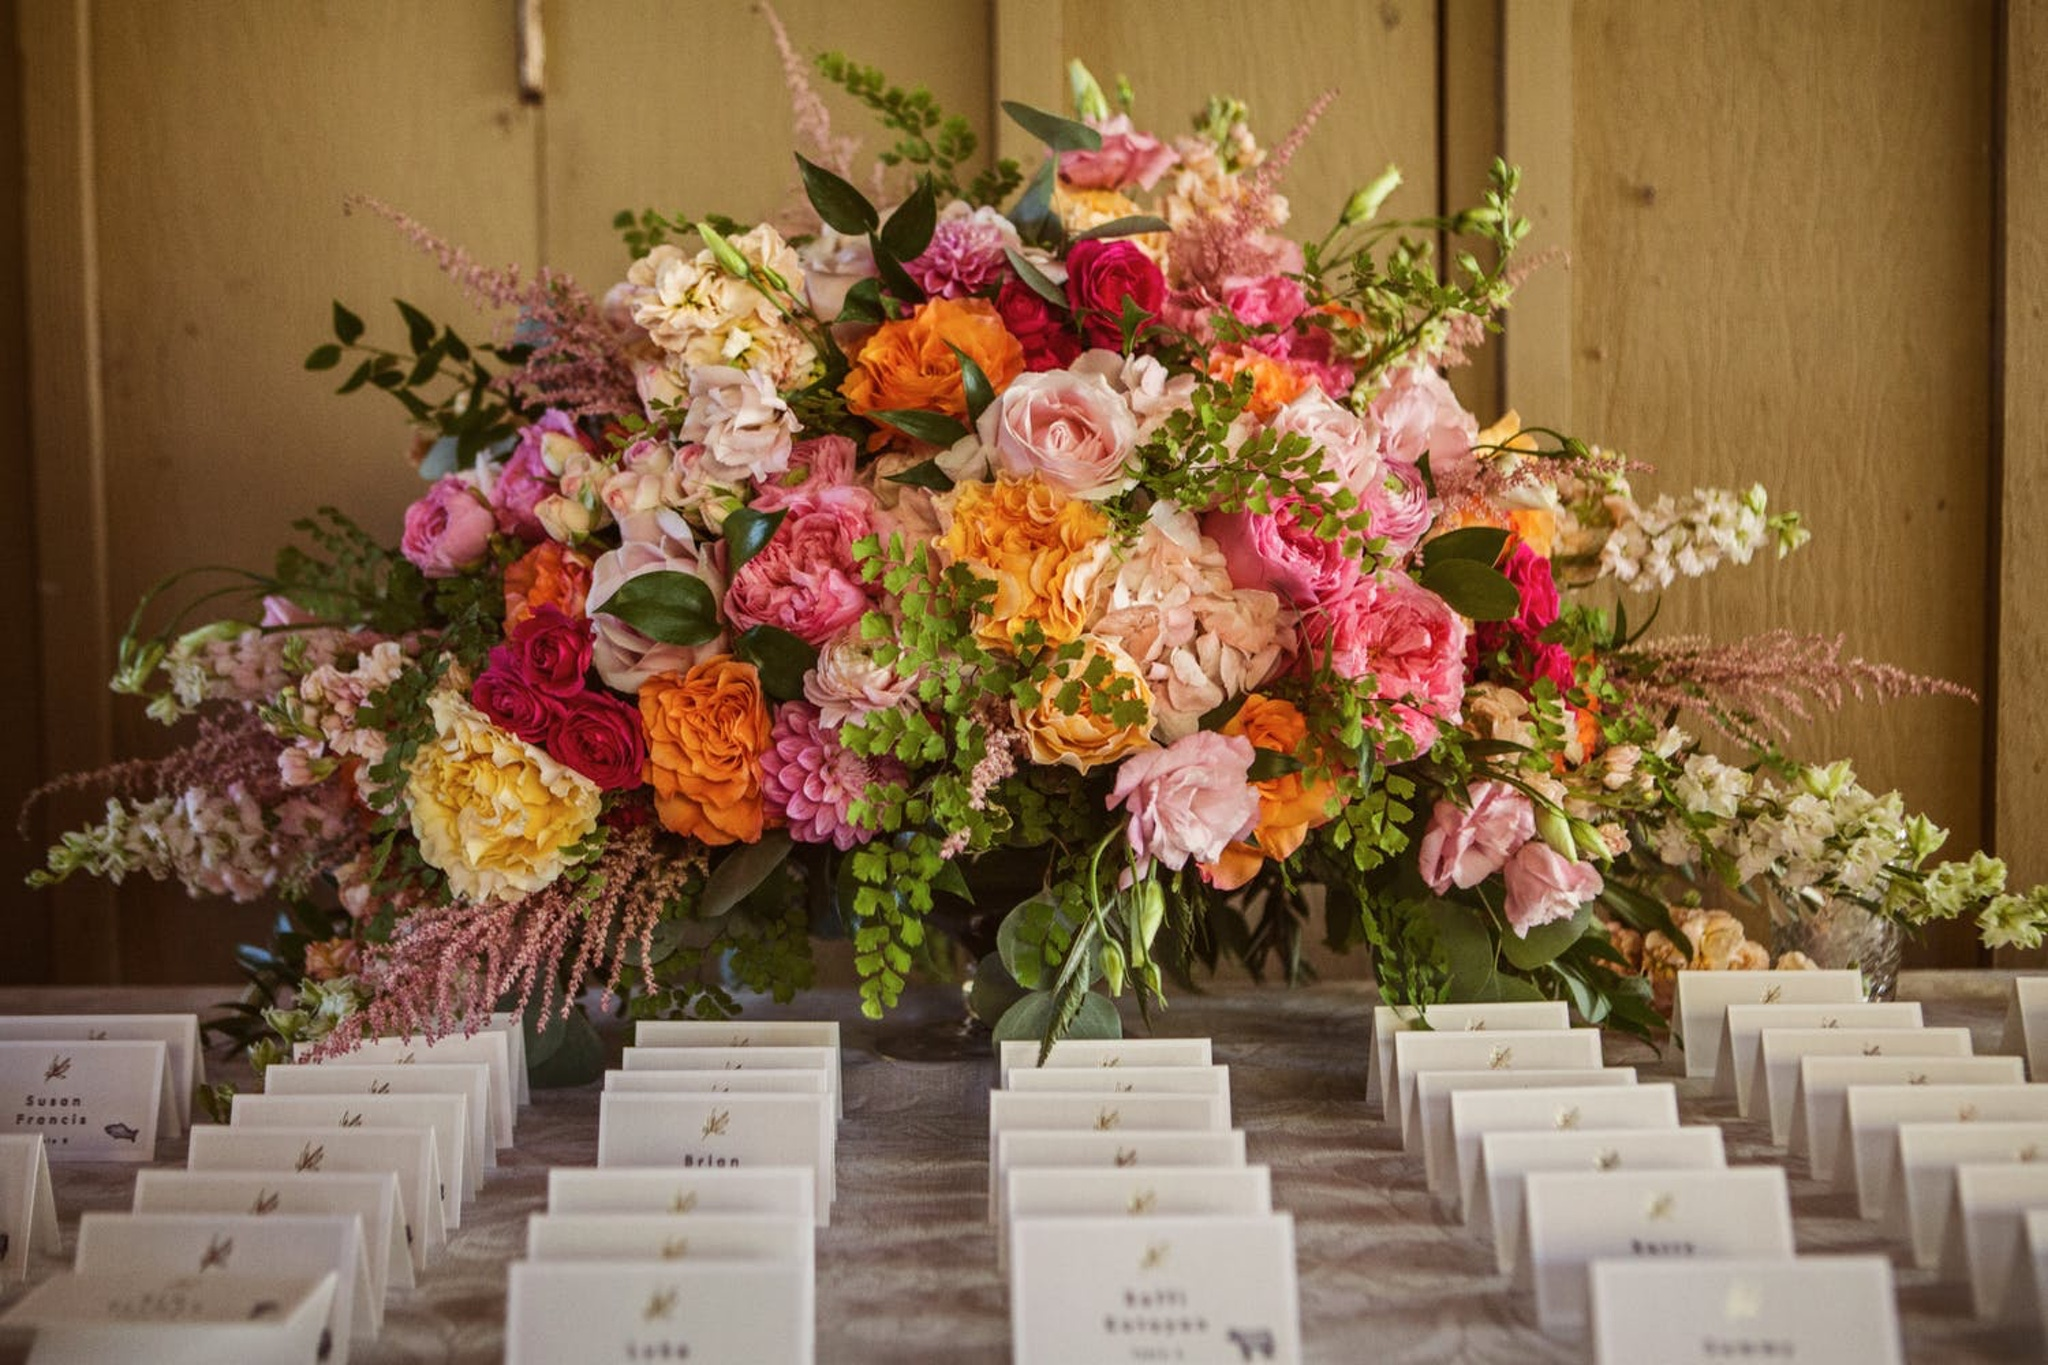 wedding seating chart with red, pink, orange and yellow floral bouquet inspired by autumn